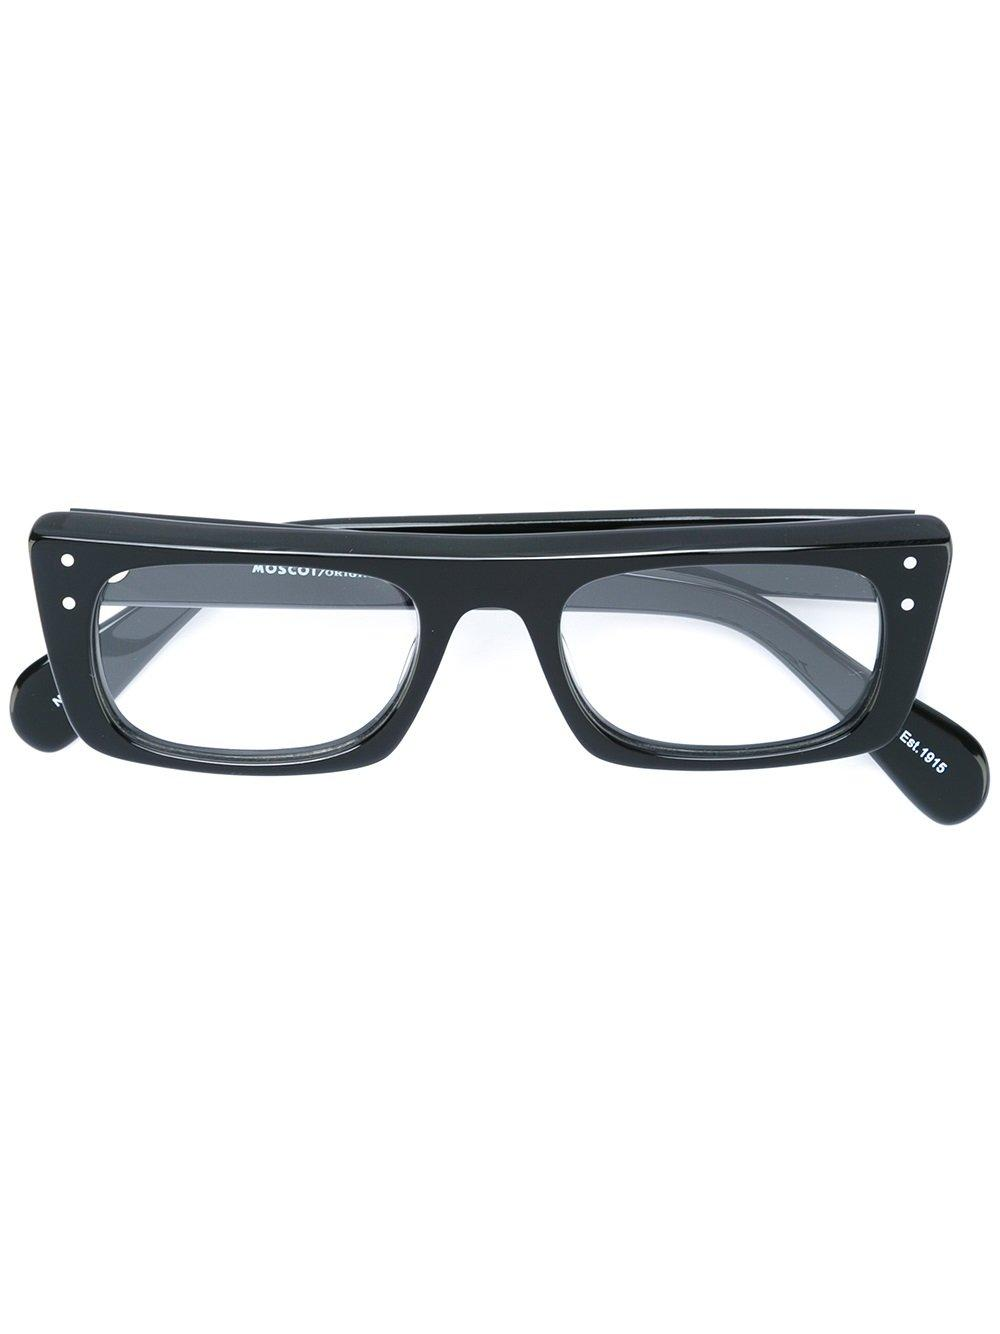 Moscot 'mangito' Glasses In Black